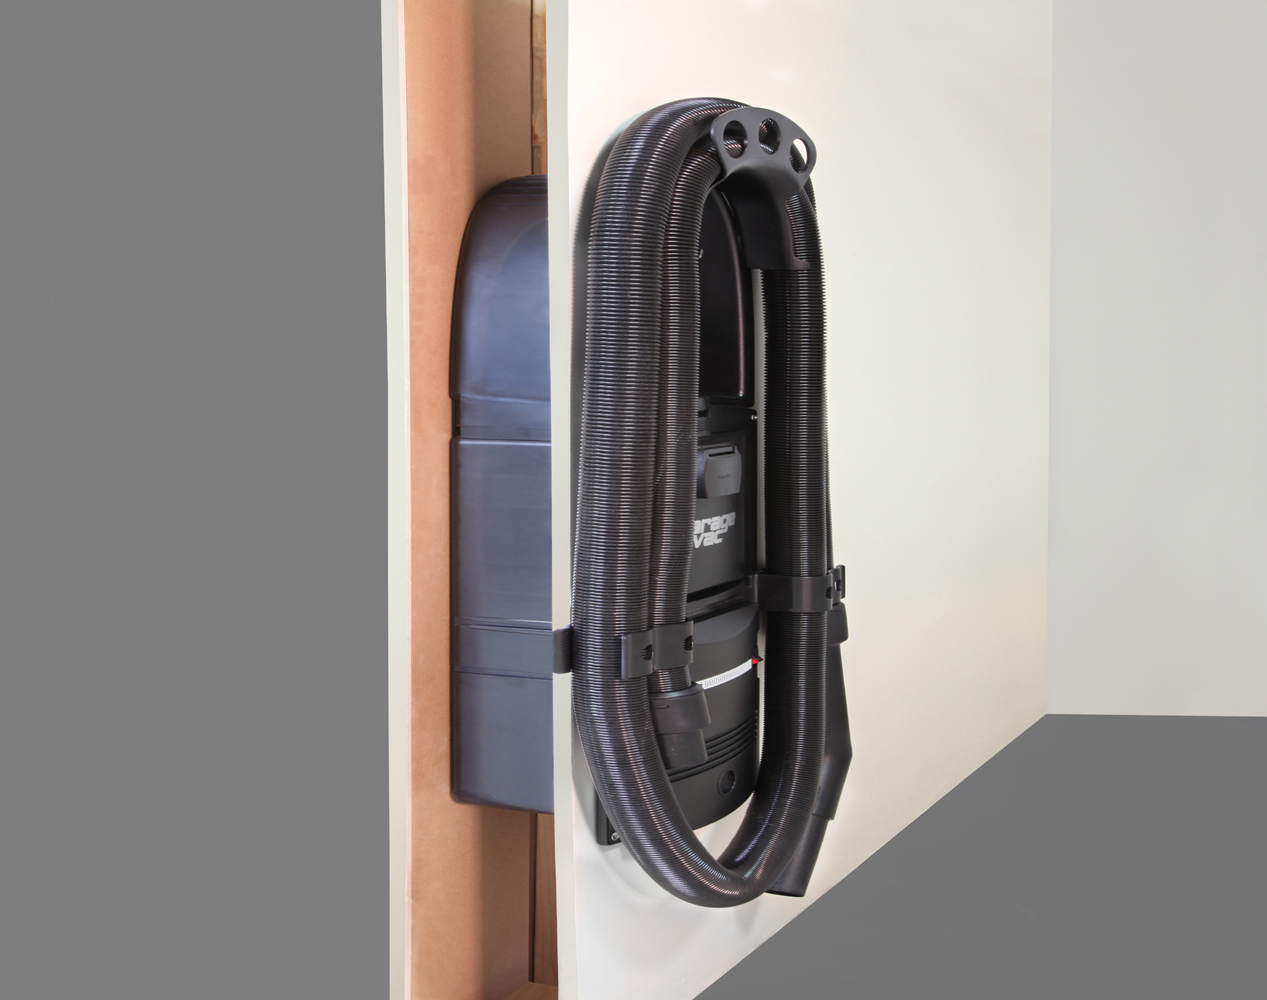 Flush Mount The Garage Vacuum In Your Wall